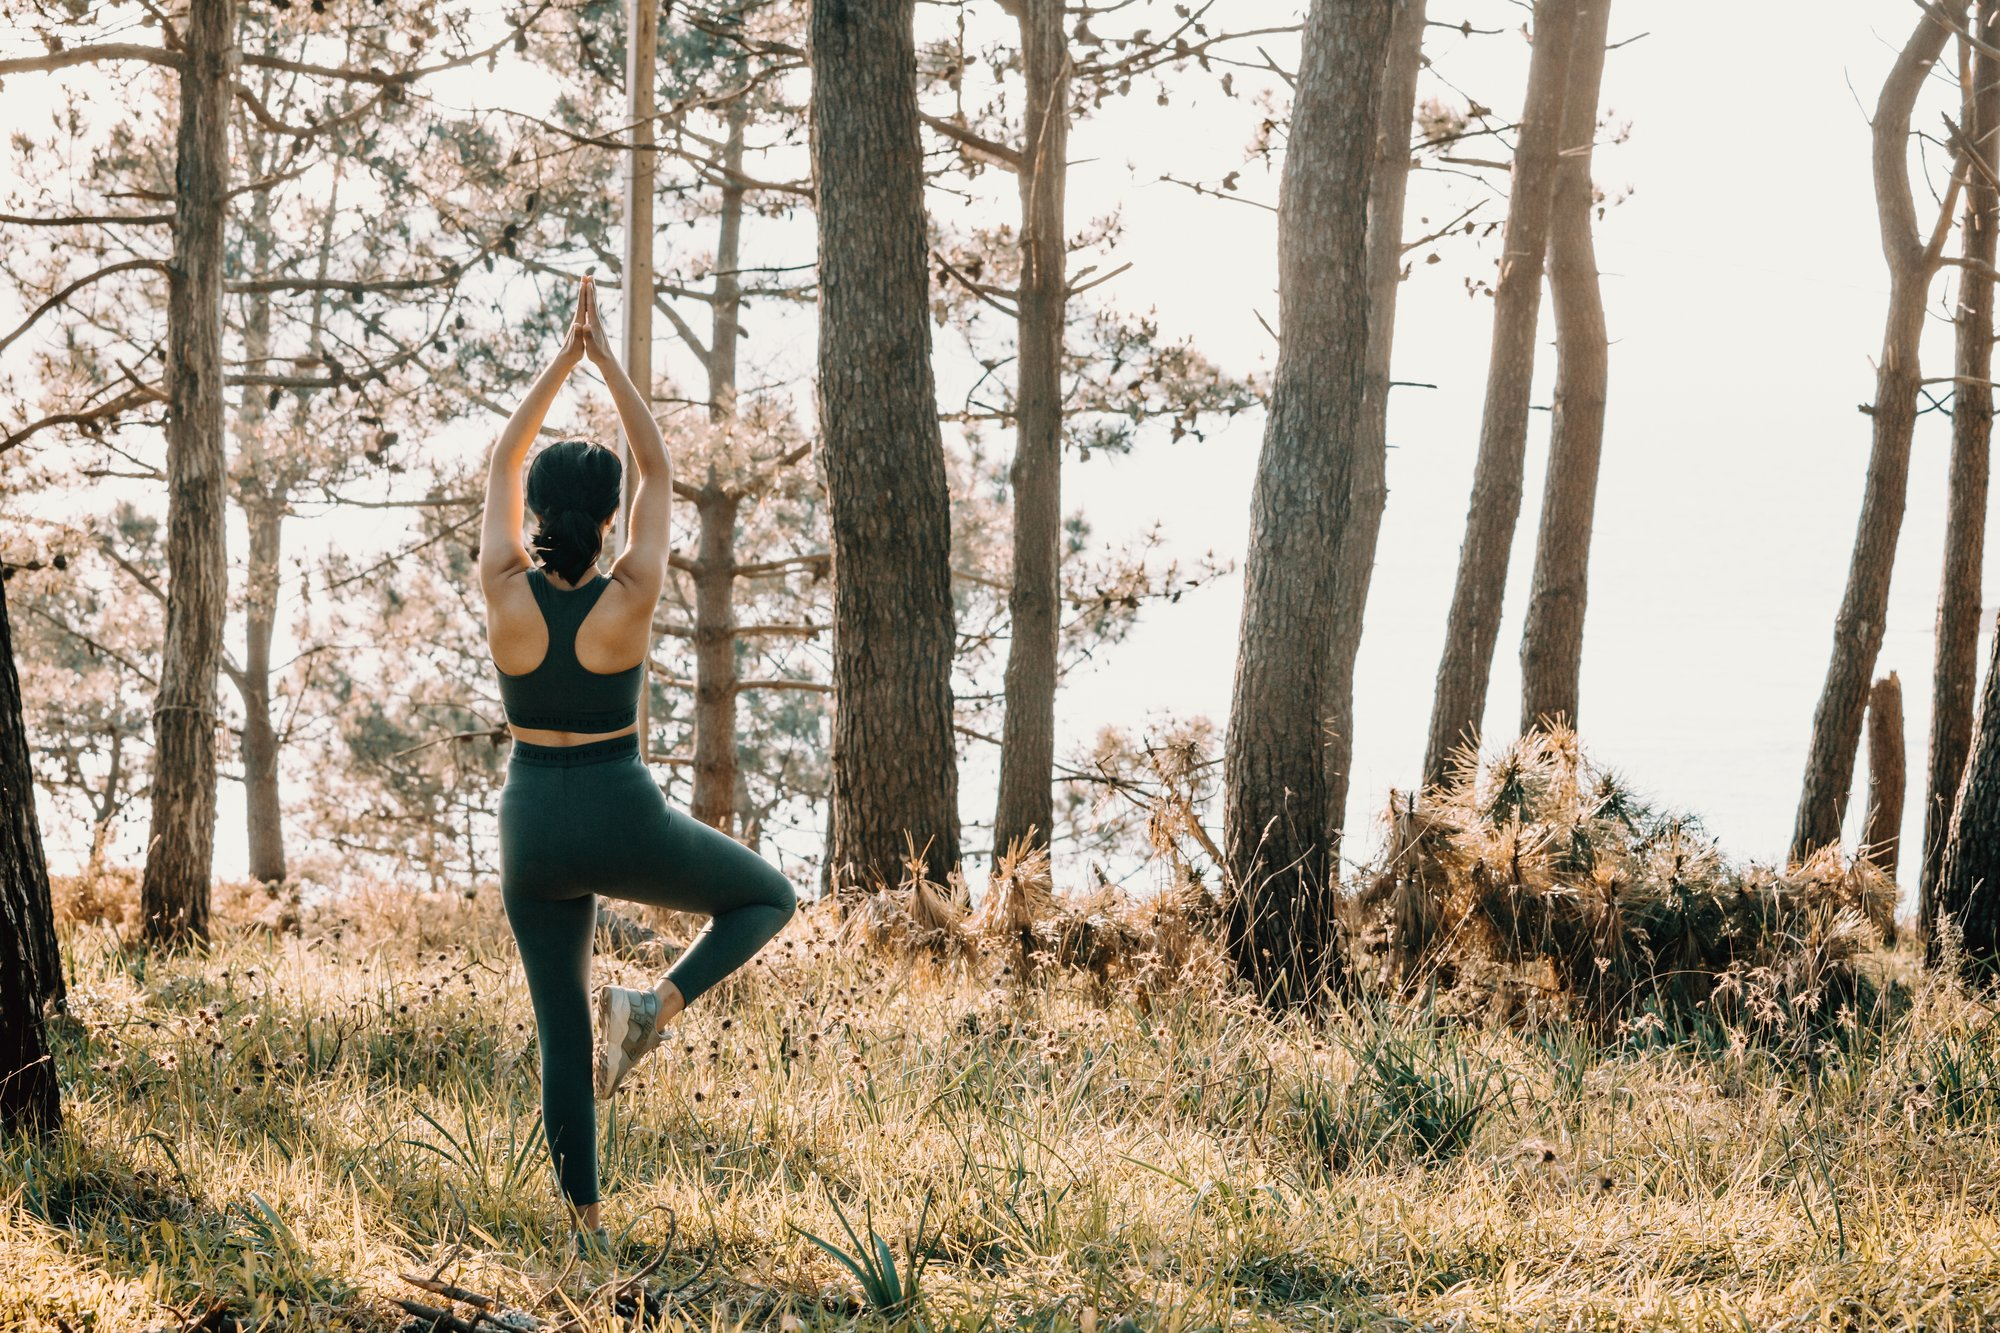 person with arms reaching high does yoga in a forest 双臂高举的人在森林里做瑜伽。